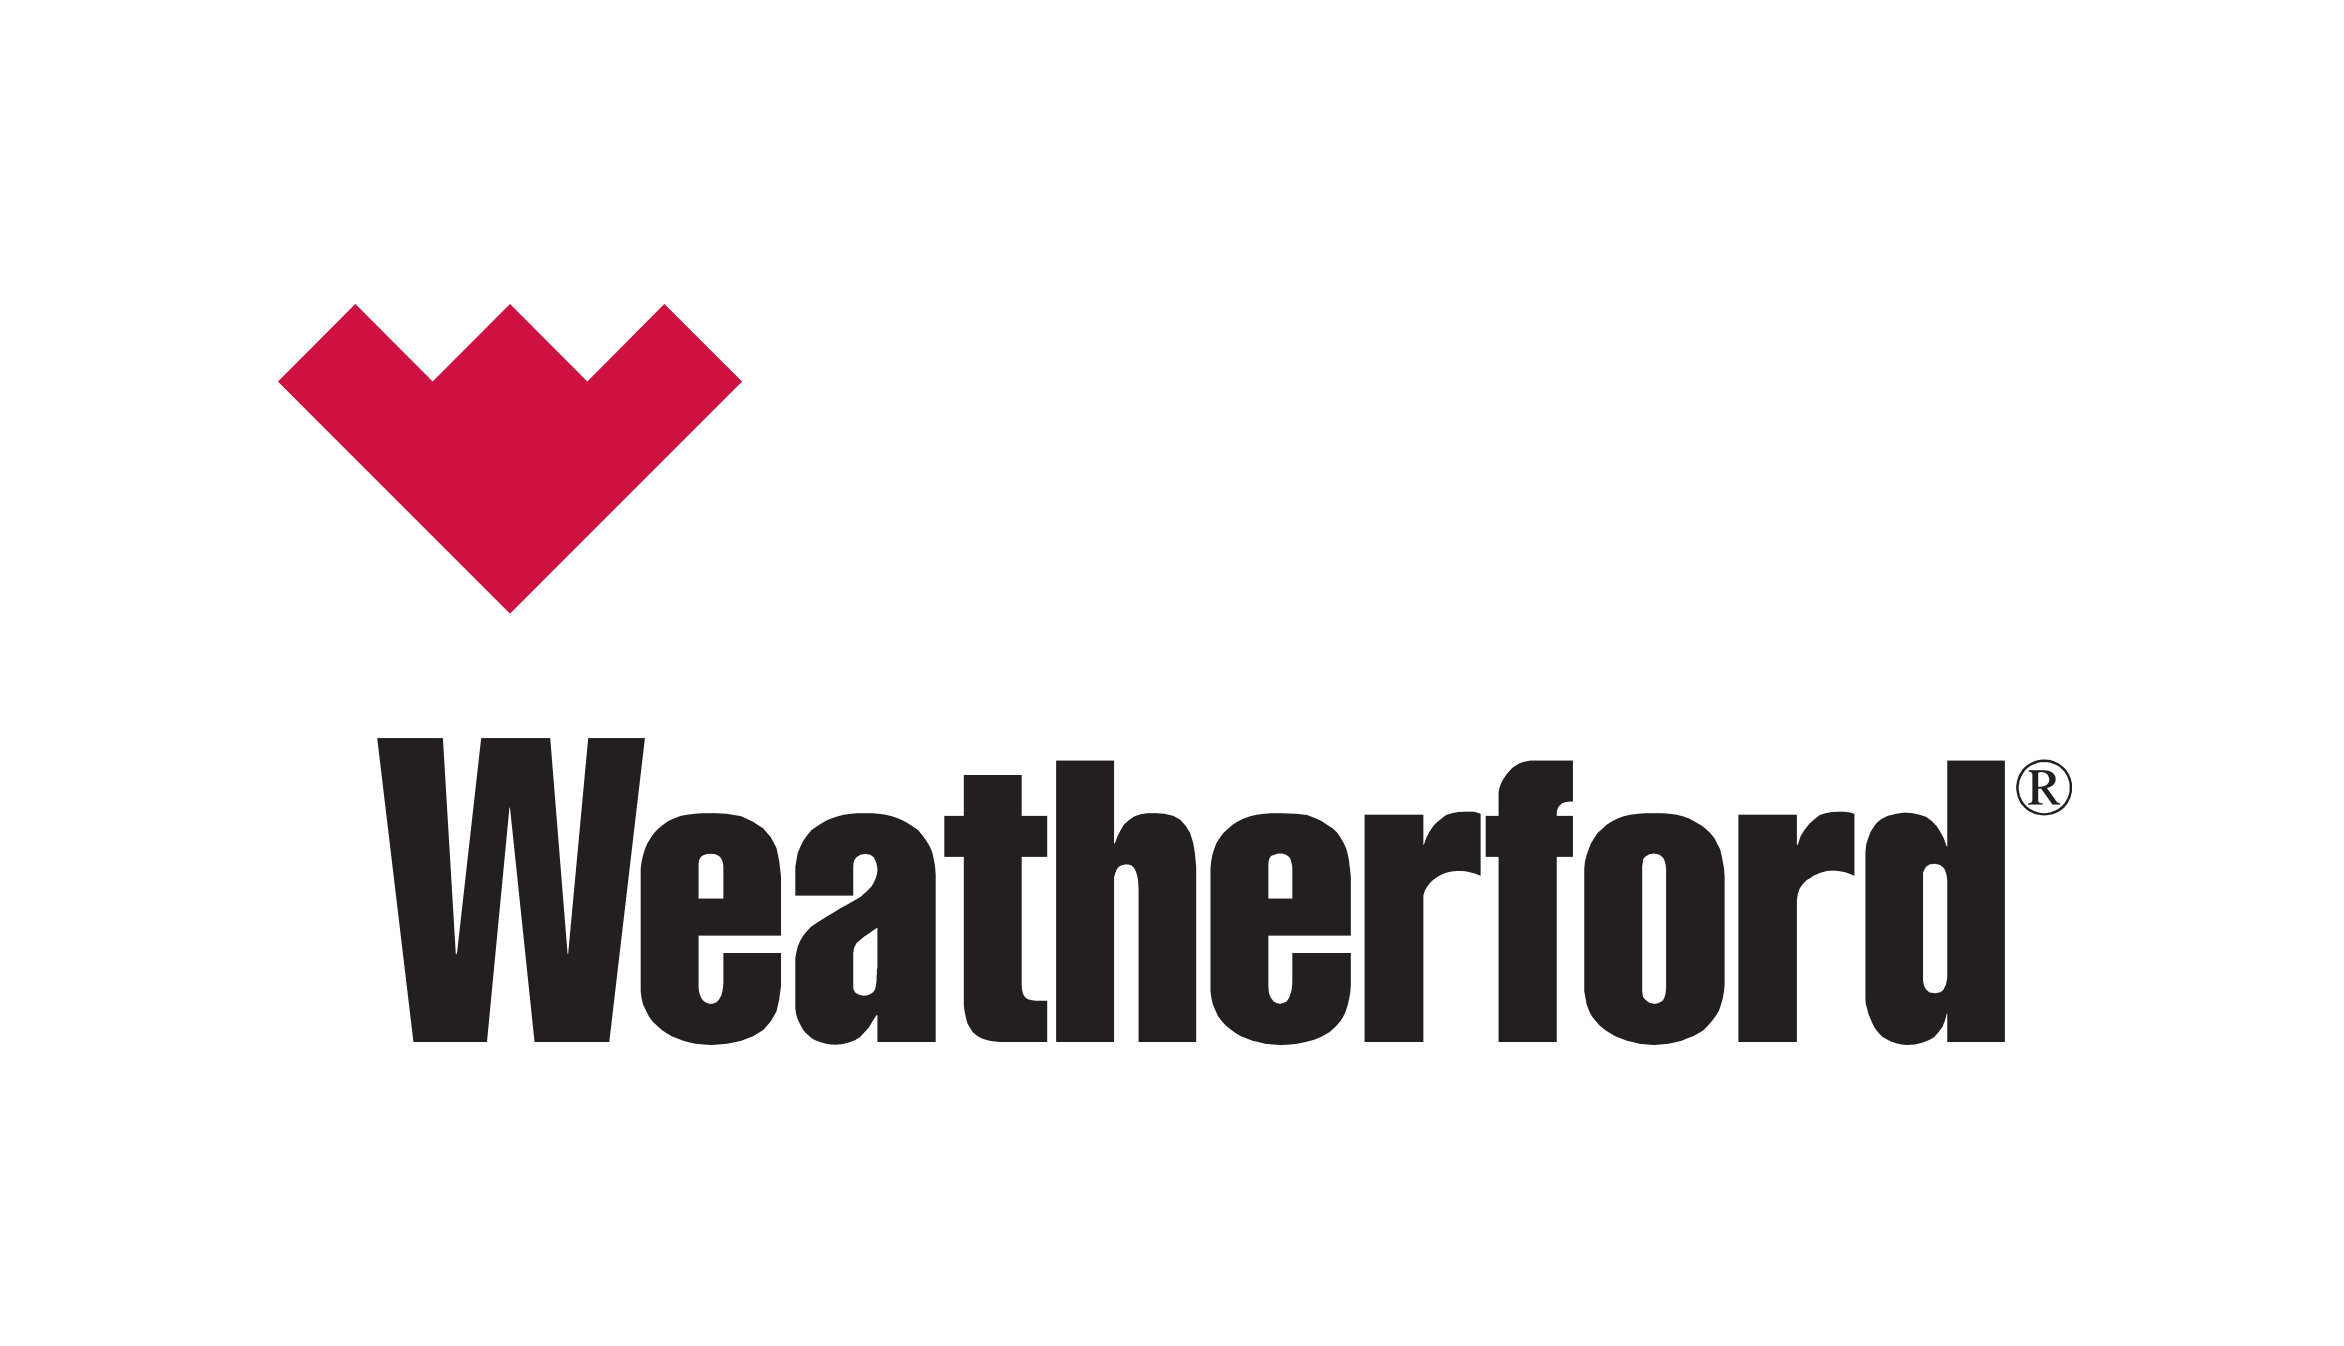 Weatherford 2016 Digital Annual Report Wins Silver at